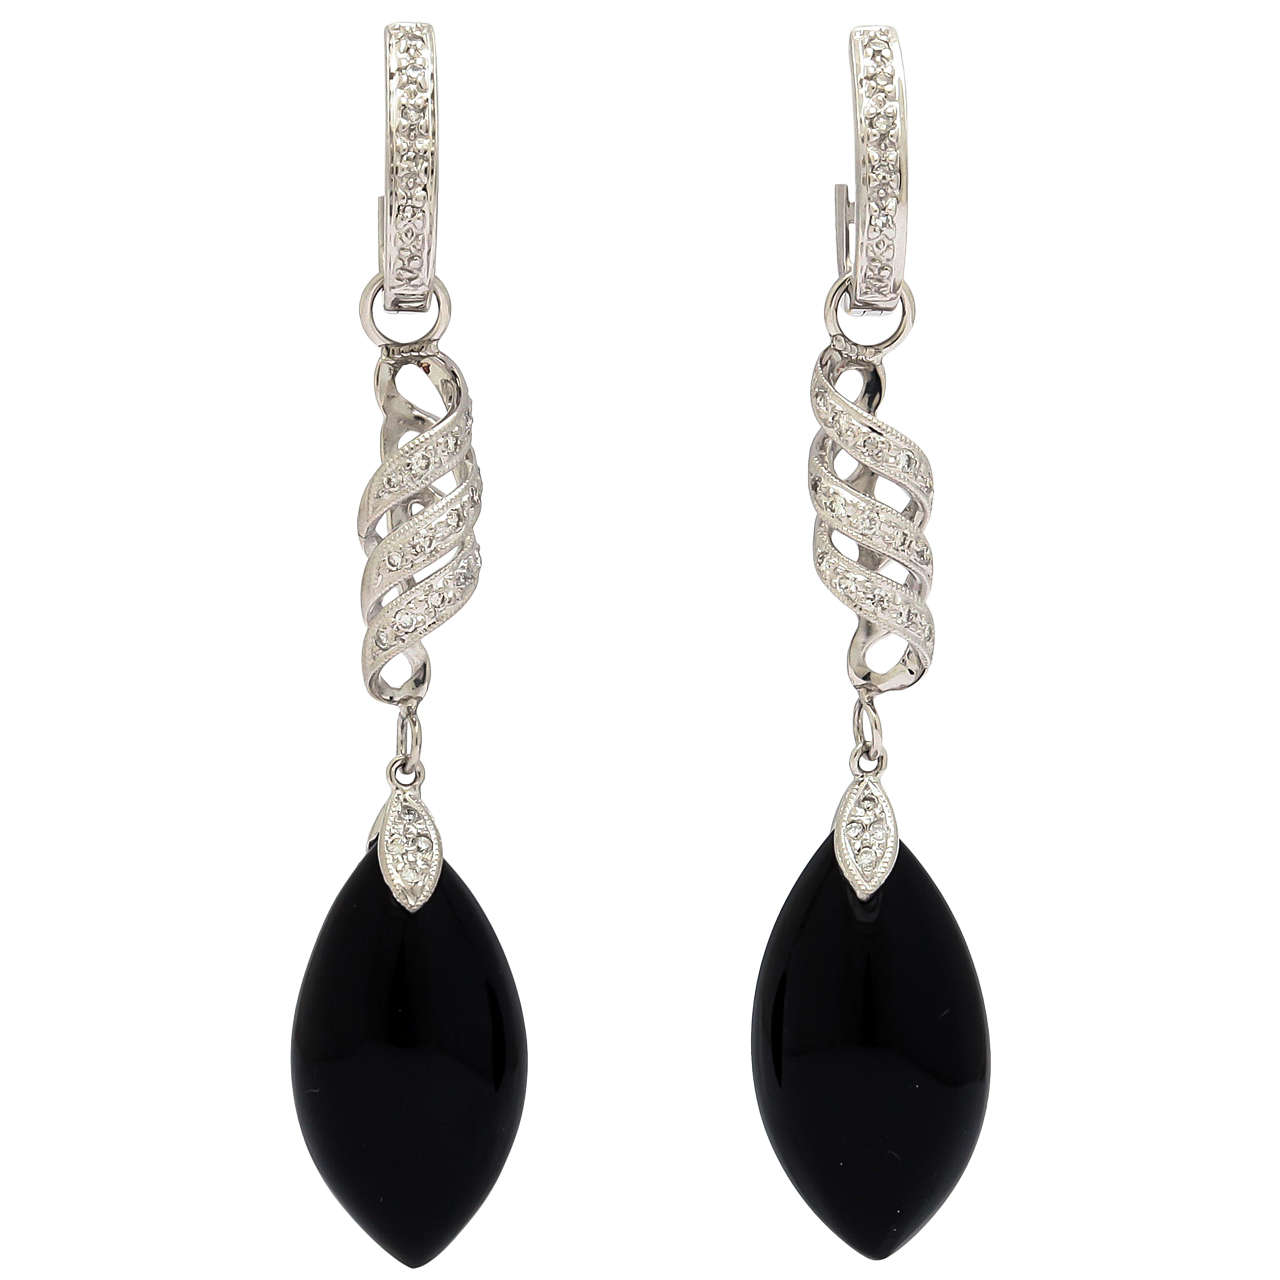 Stunning Convertible Diamond and Black Onyx Earrings